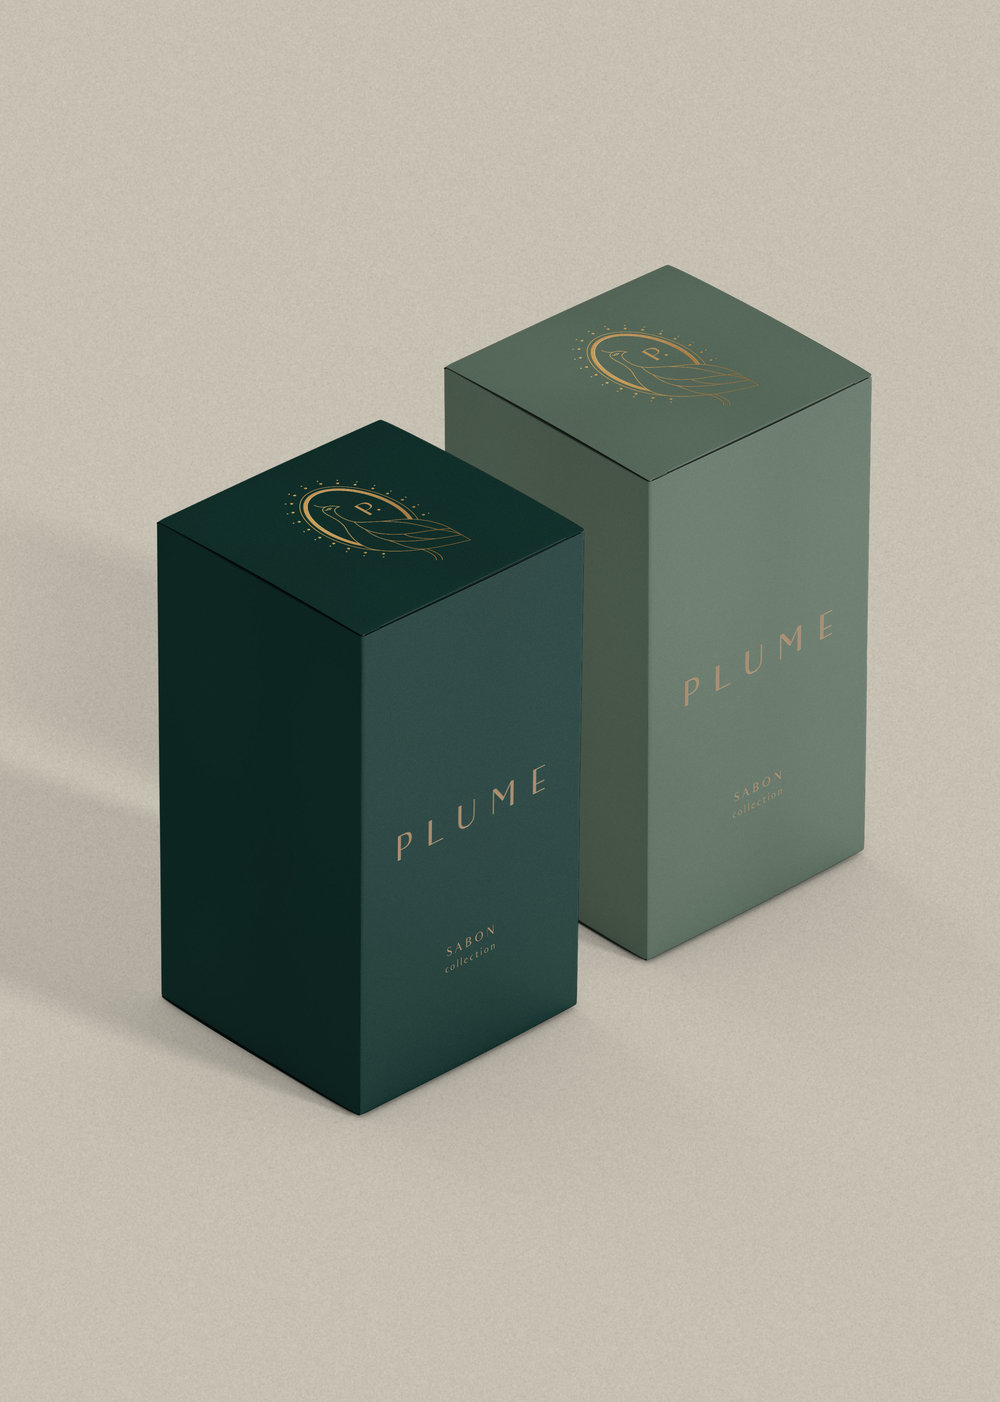 plume-logo-packaging-design-gold-loolaadesigns.jpg